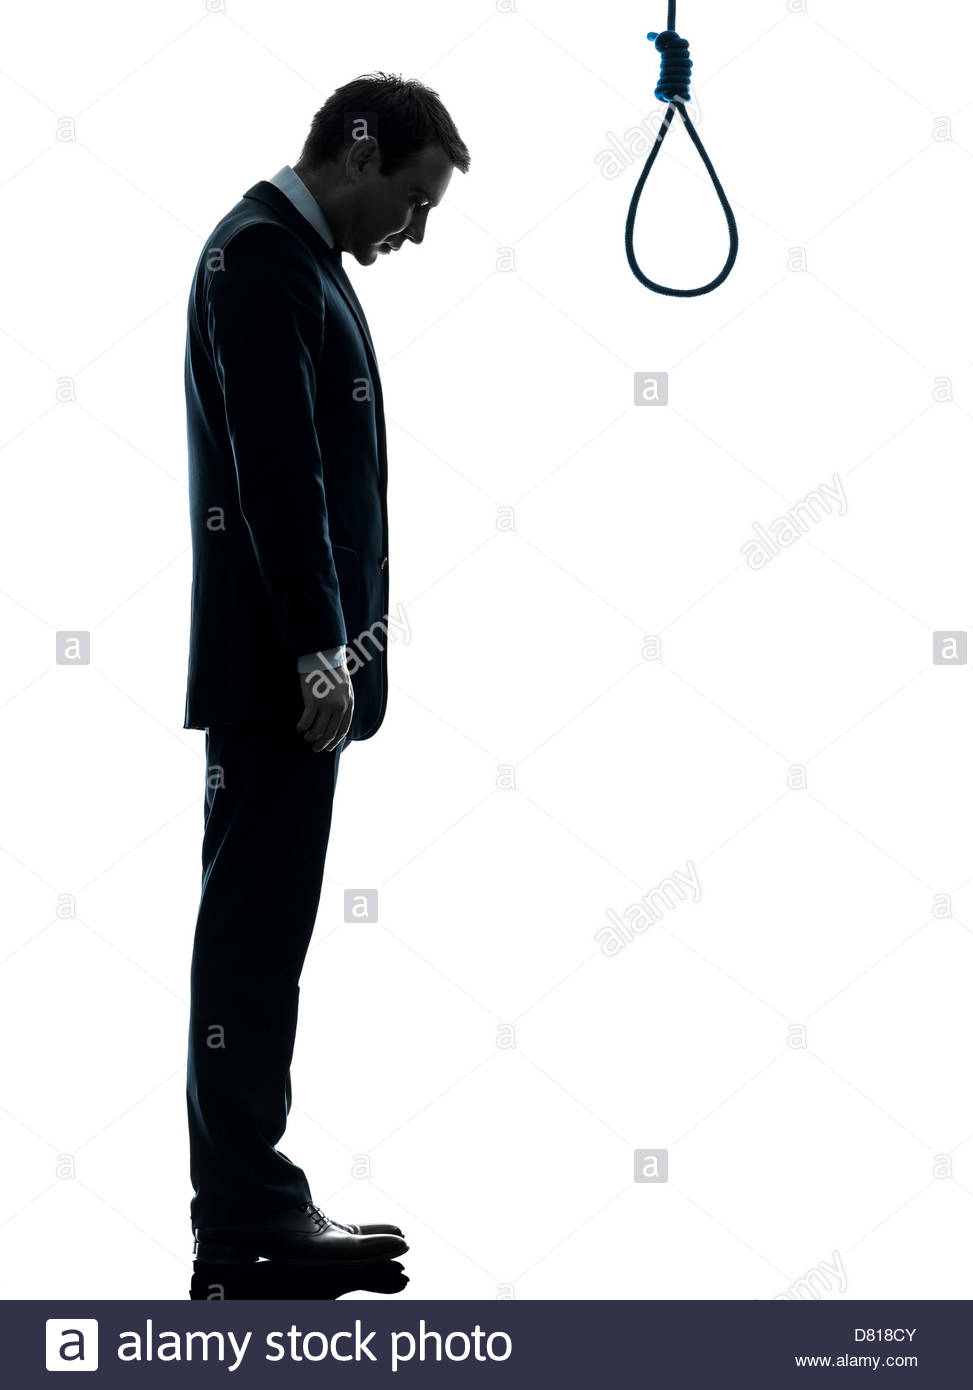 973x1390 Depressed Man Silhouette Cut Out Stock Images Amp Pictures